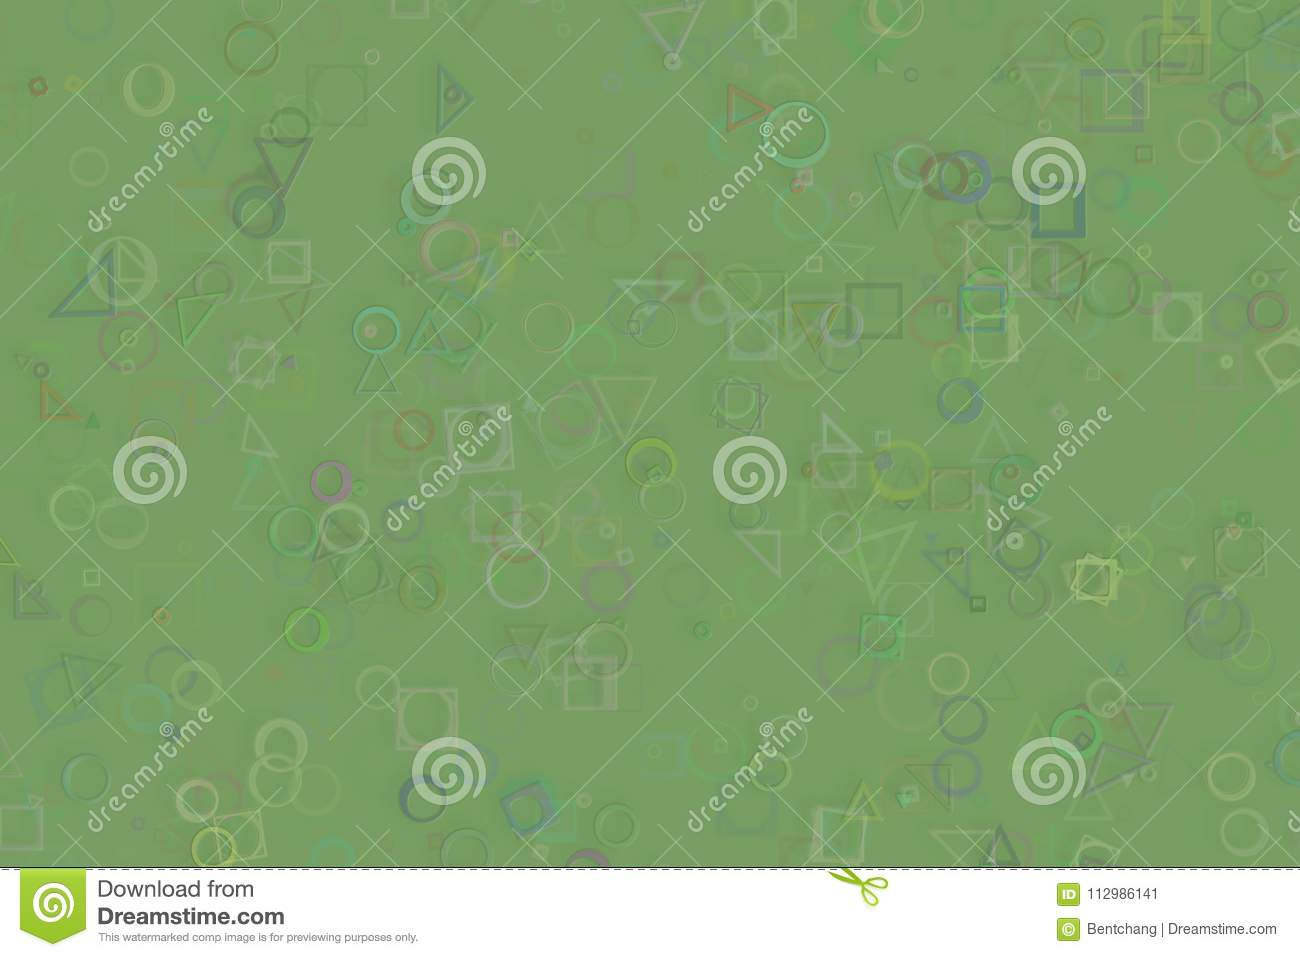 Abstract background with shape. Pattern, decoration, backdrop, details & paper.